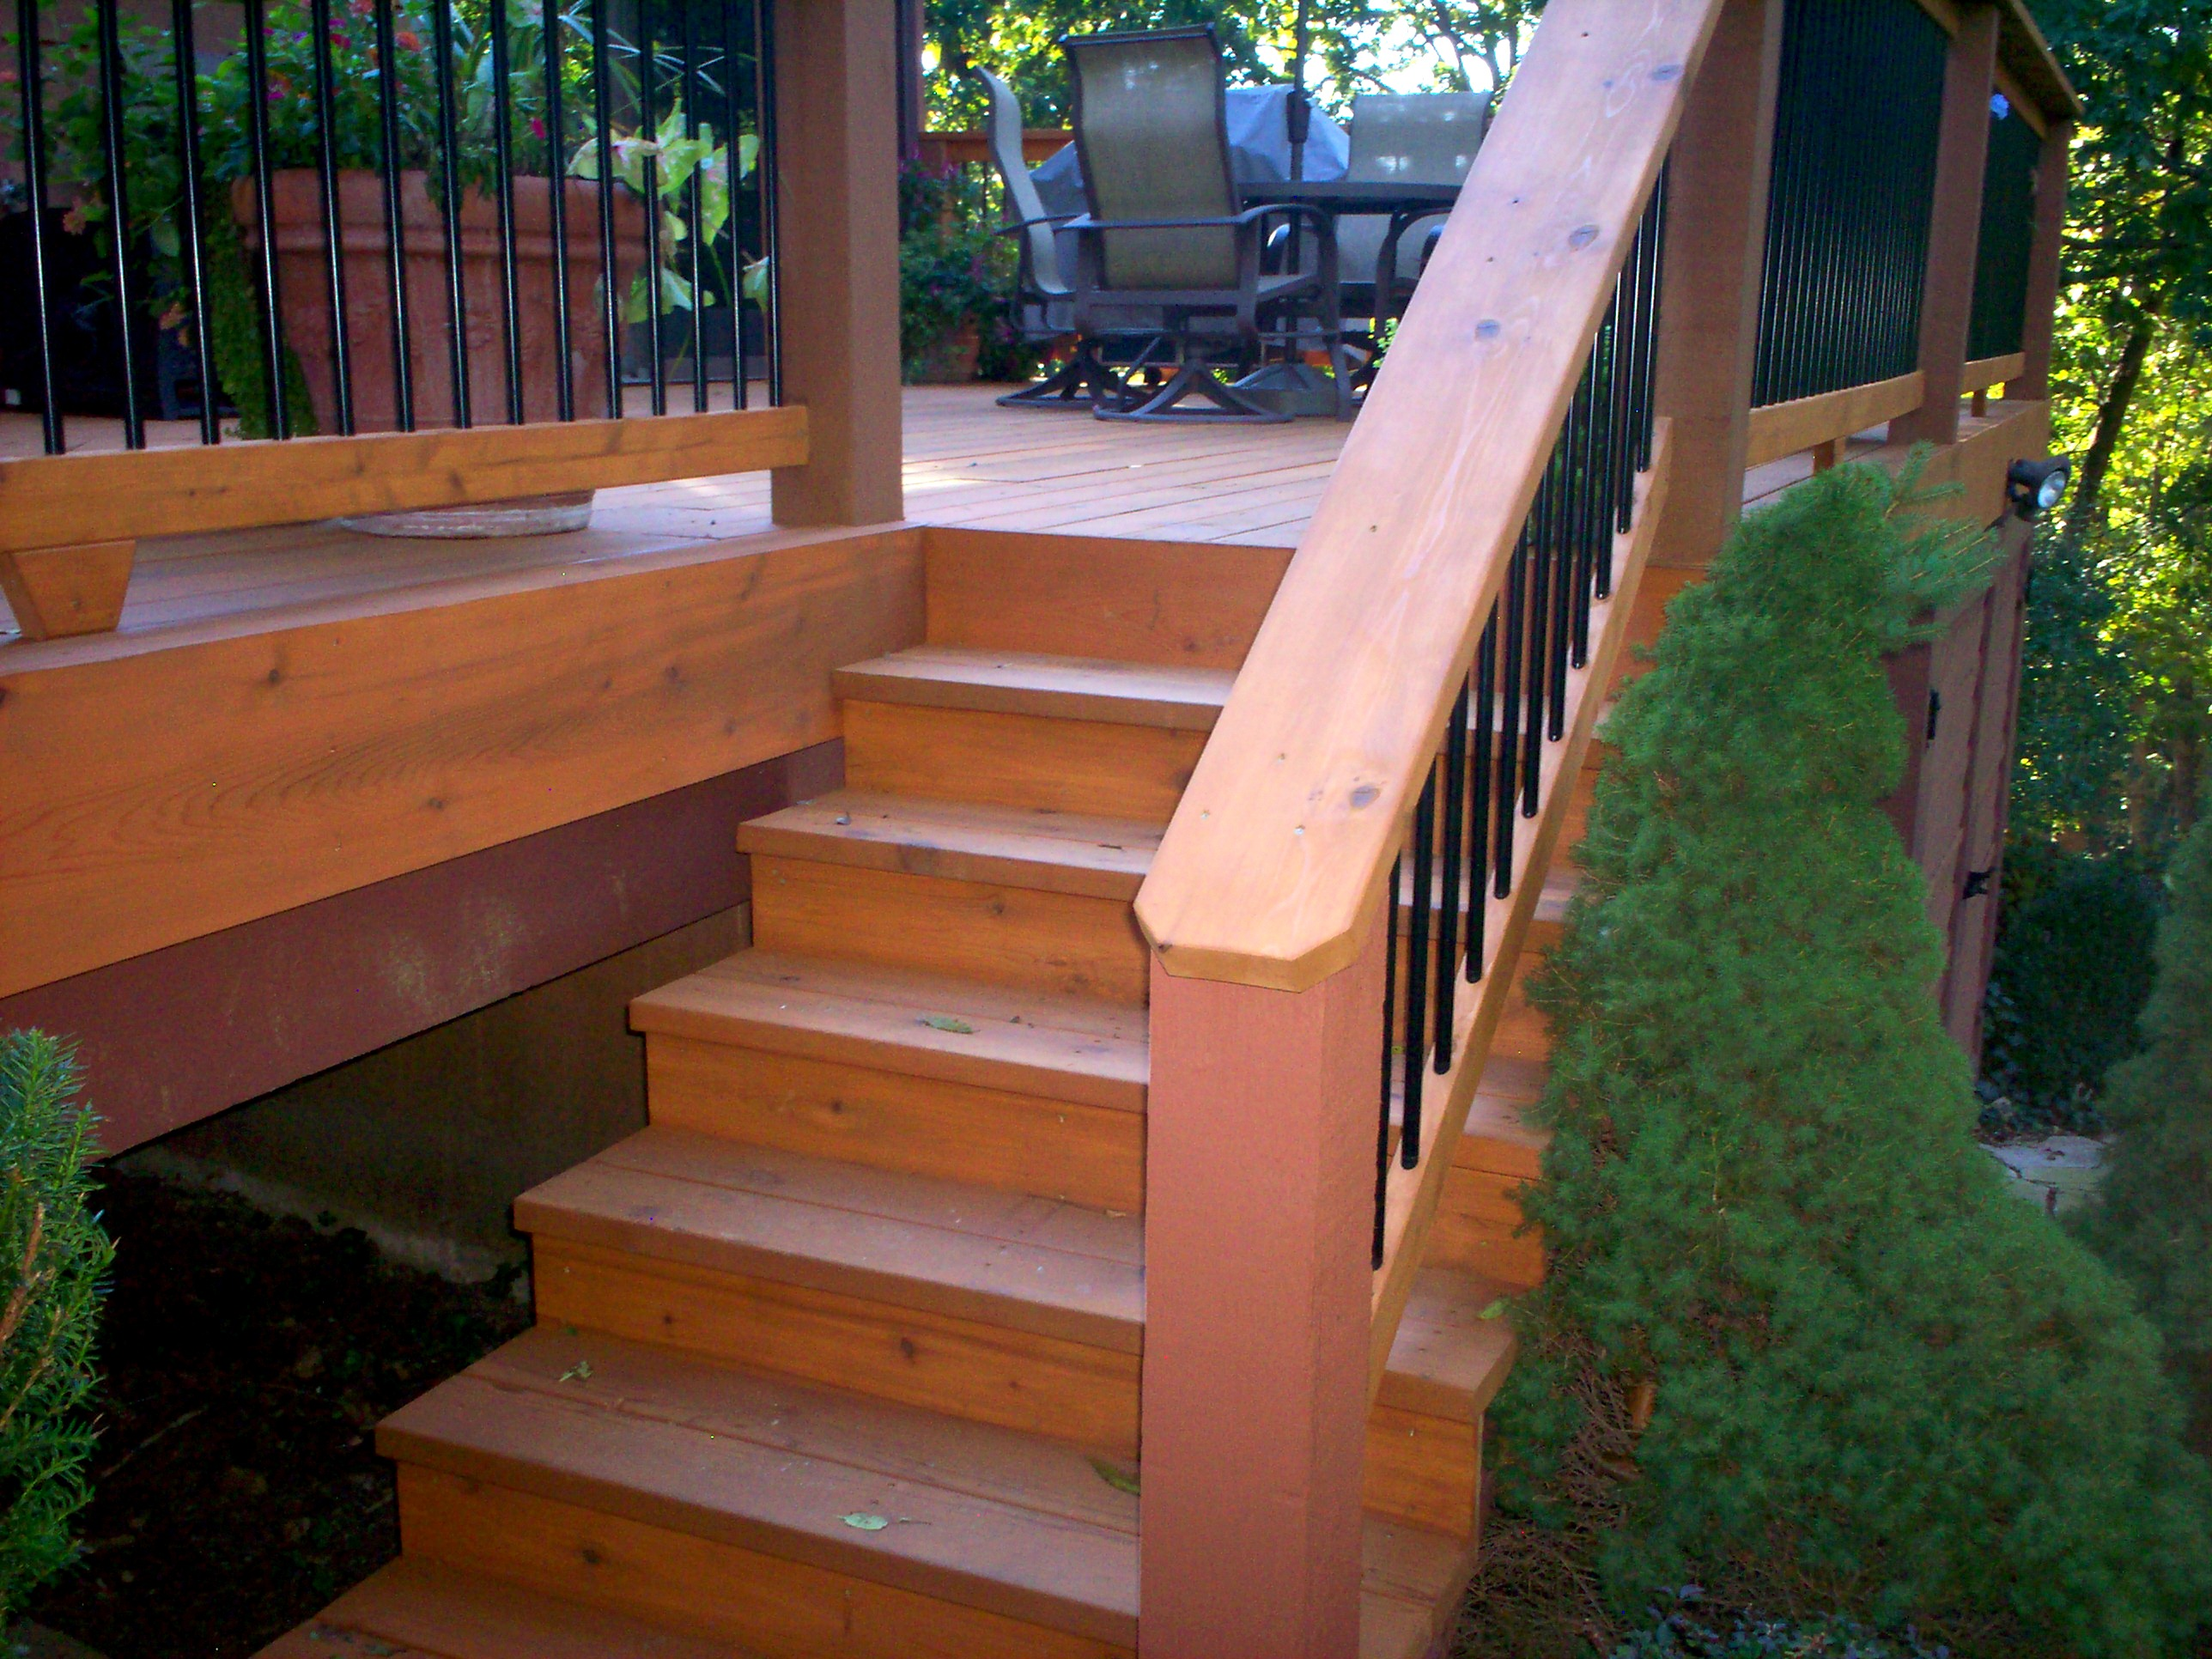 Aluminum Tubing Sizes >> St. Louis Mo: Decks and railings designed with the perfect baluster | St. Louis decks, screened ...